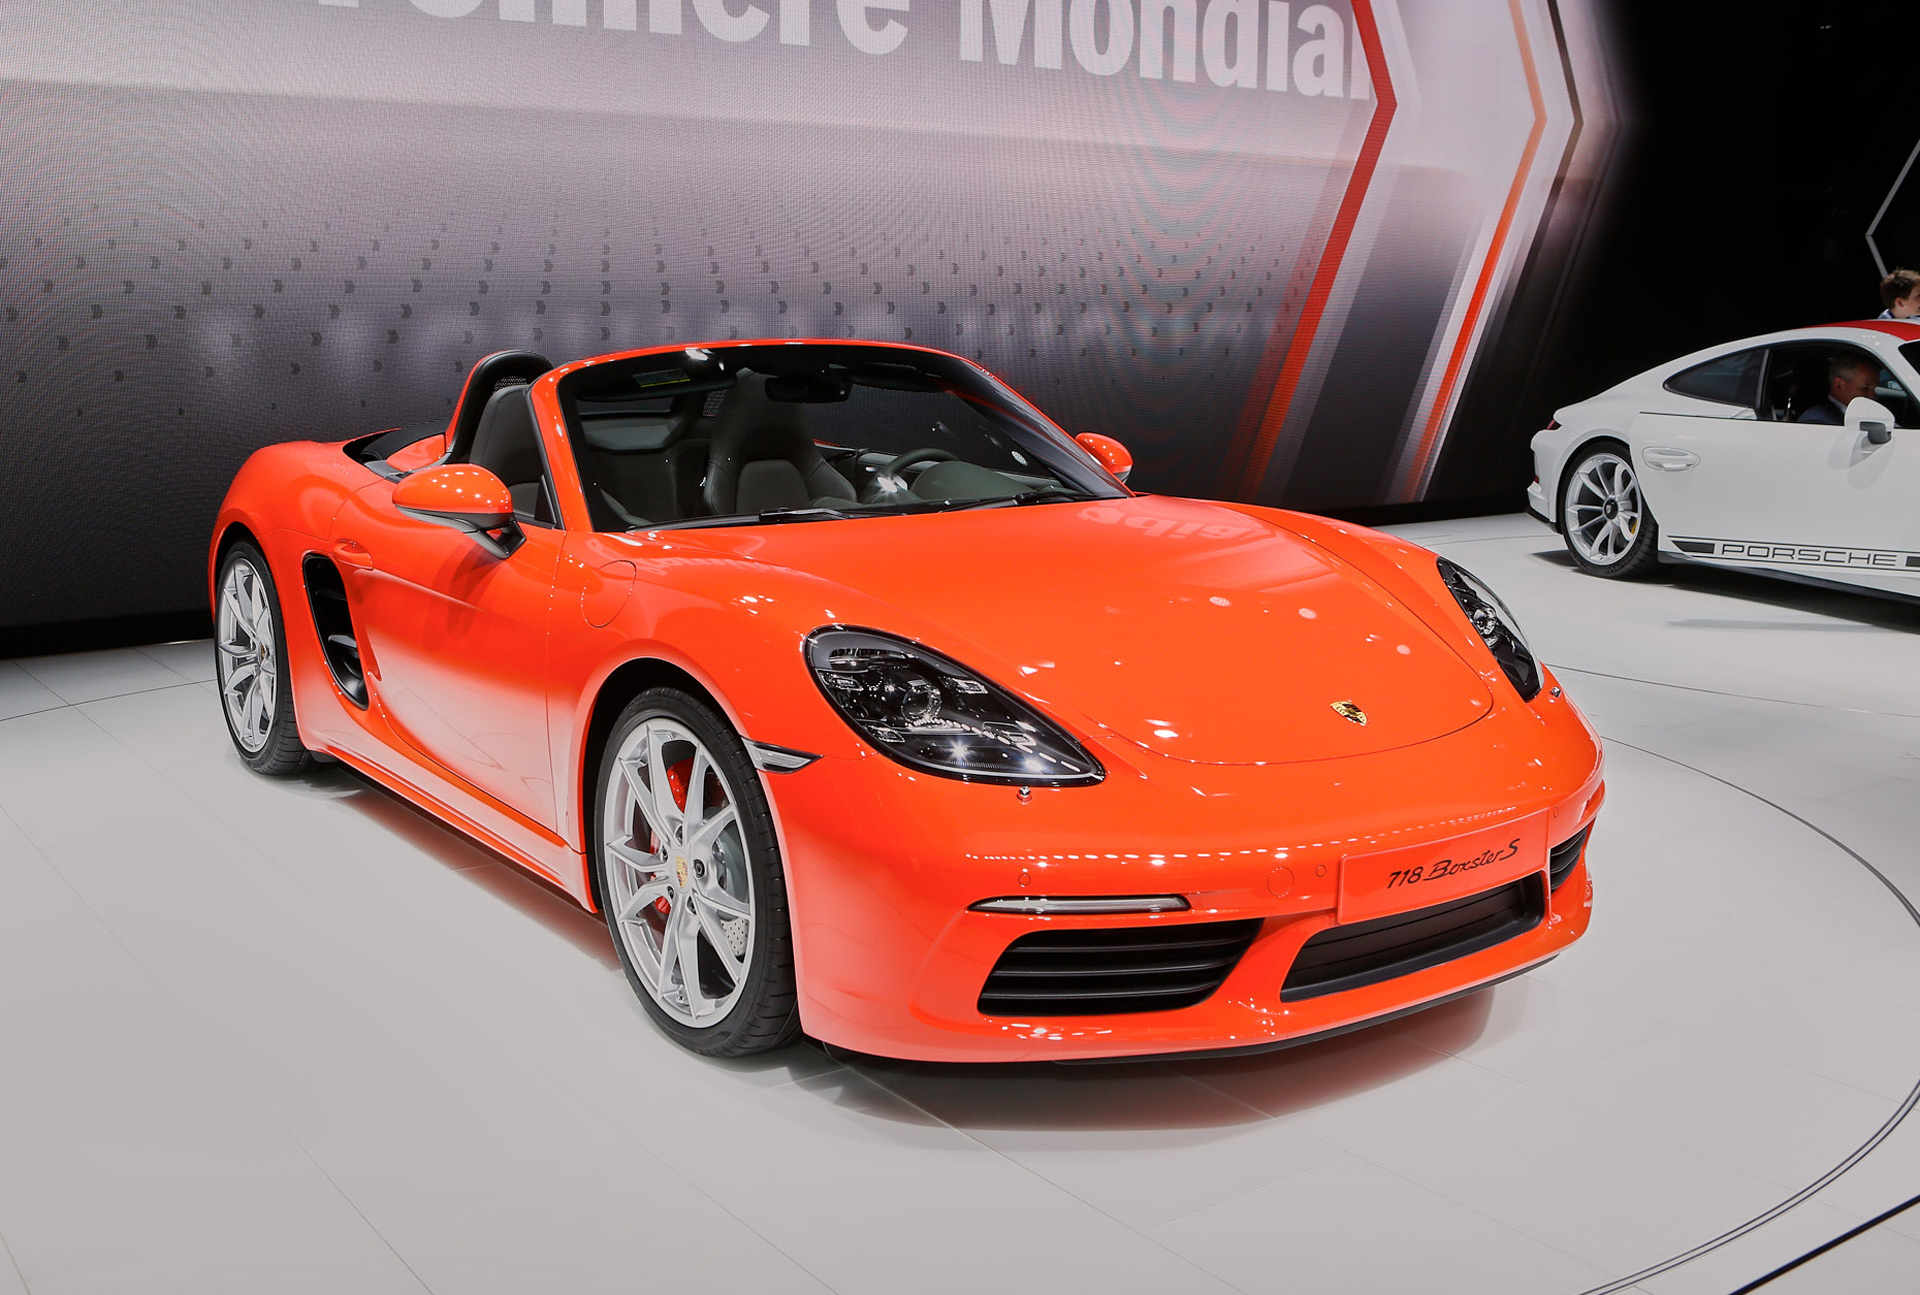 2017 Porsche 718 Boxster debuts with turbocharged inline-4